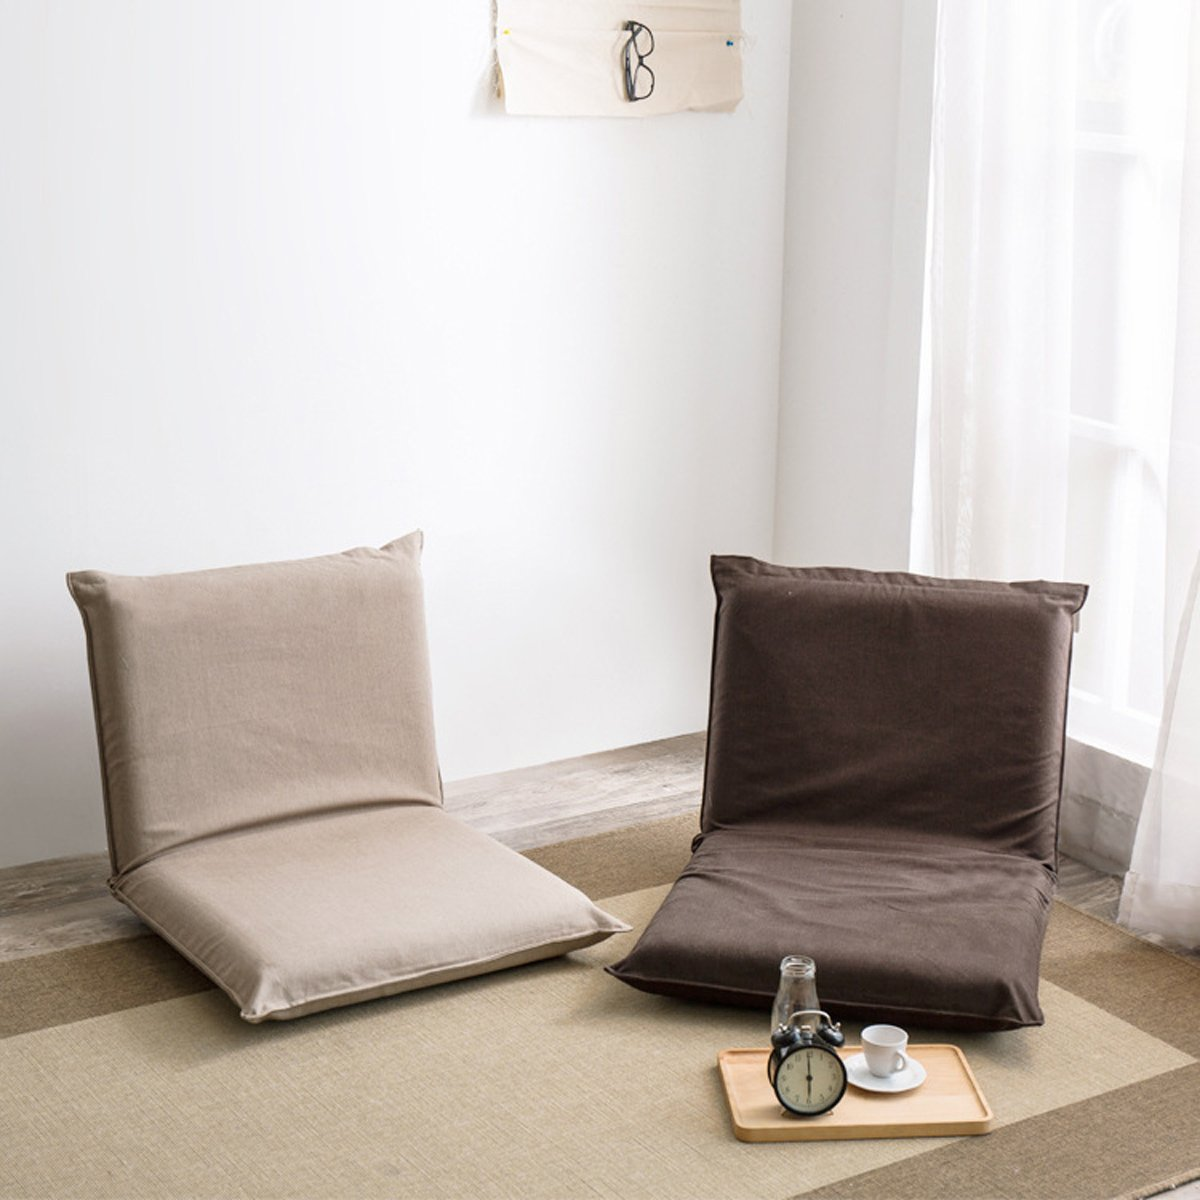 Japanese-style Seating Floor Sofa Chair Six Position Multiangle Adjustable Folding Lazy Men Chair Living Room Cushion Outdoor Indoor Single Tatami Cushion (Dark Brown) by Razou@ (Image #3)